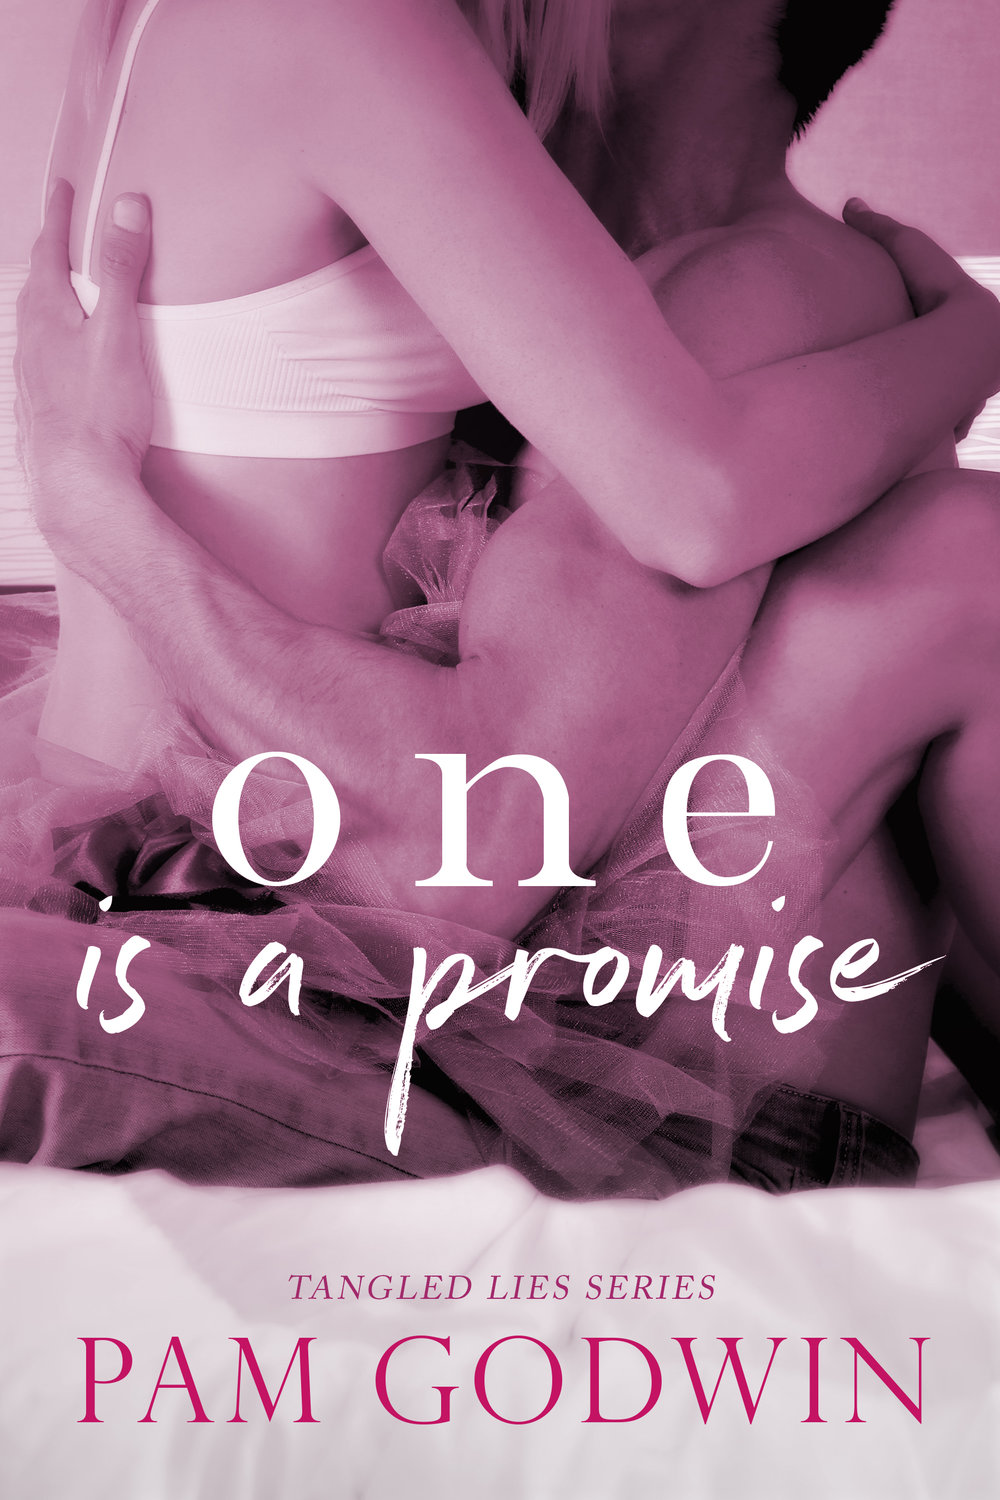 ONE IS A PROMISE ~ June 6, 2017 One promise...One forever. One look and I knew Cole was mine. My dark rebel in leather. My powerhouse of passion, devastating smiles, and impulsiveness. When his job sends him overseas, he promises to return to me. A promise that's destroyed in the most irrevocable way. Two years later, an arrogant suit invades my heartbroken loneliness. Clean-cut and stern, Trace is everything Cole wasn't. At first, he's a job that will rescue my dance company. But as he intrudes on my life, our hostile relationship evolves. He knows I'm still in love with Cole, but his dedication is my undoing. Then a catastrophic moment changes everything. Promises resurface. Lies entangle. And an impossible choice shatters my world. I love two men, and I can only have one. Amazon ~ Other retailers